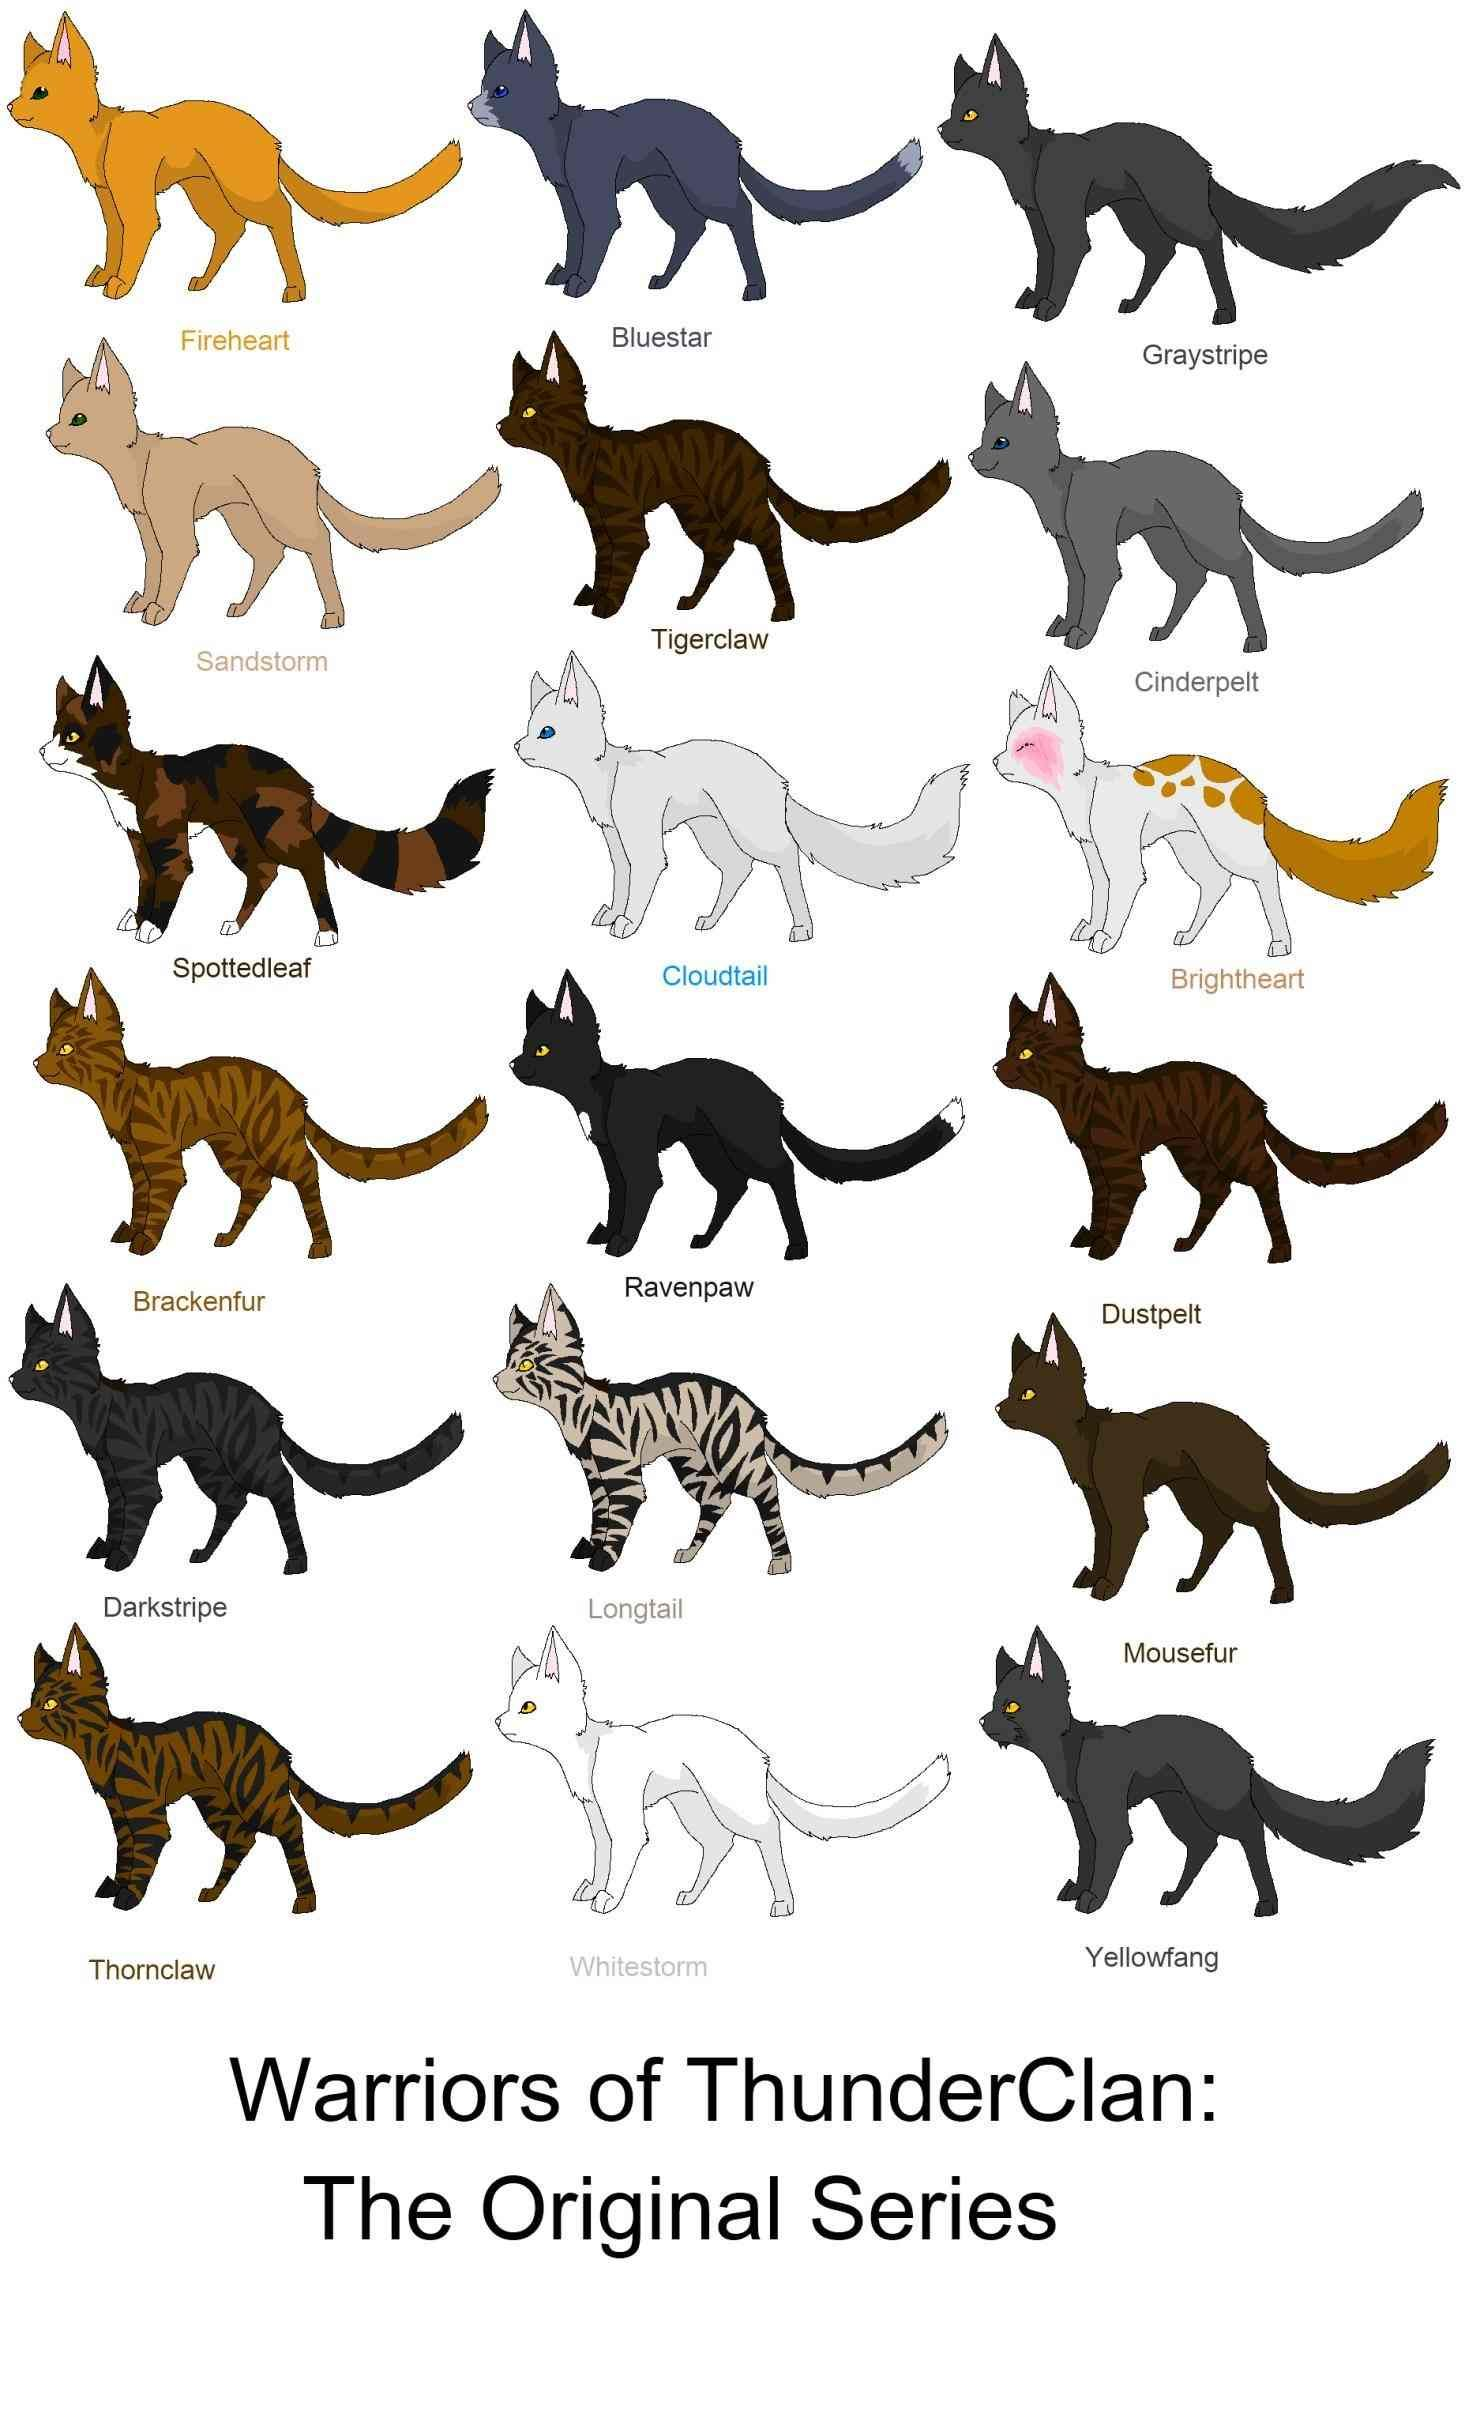 Image for warrior cats thunderclan cat names Warrior